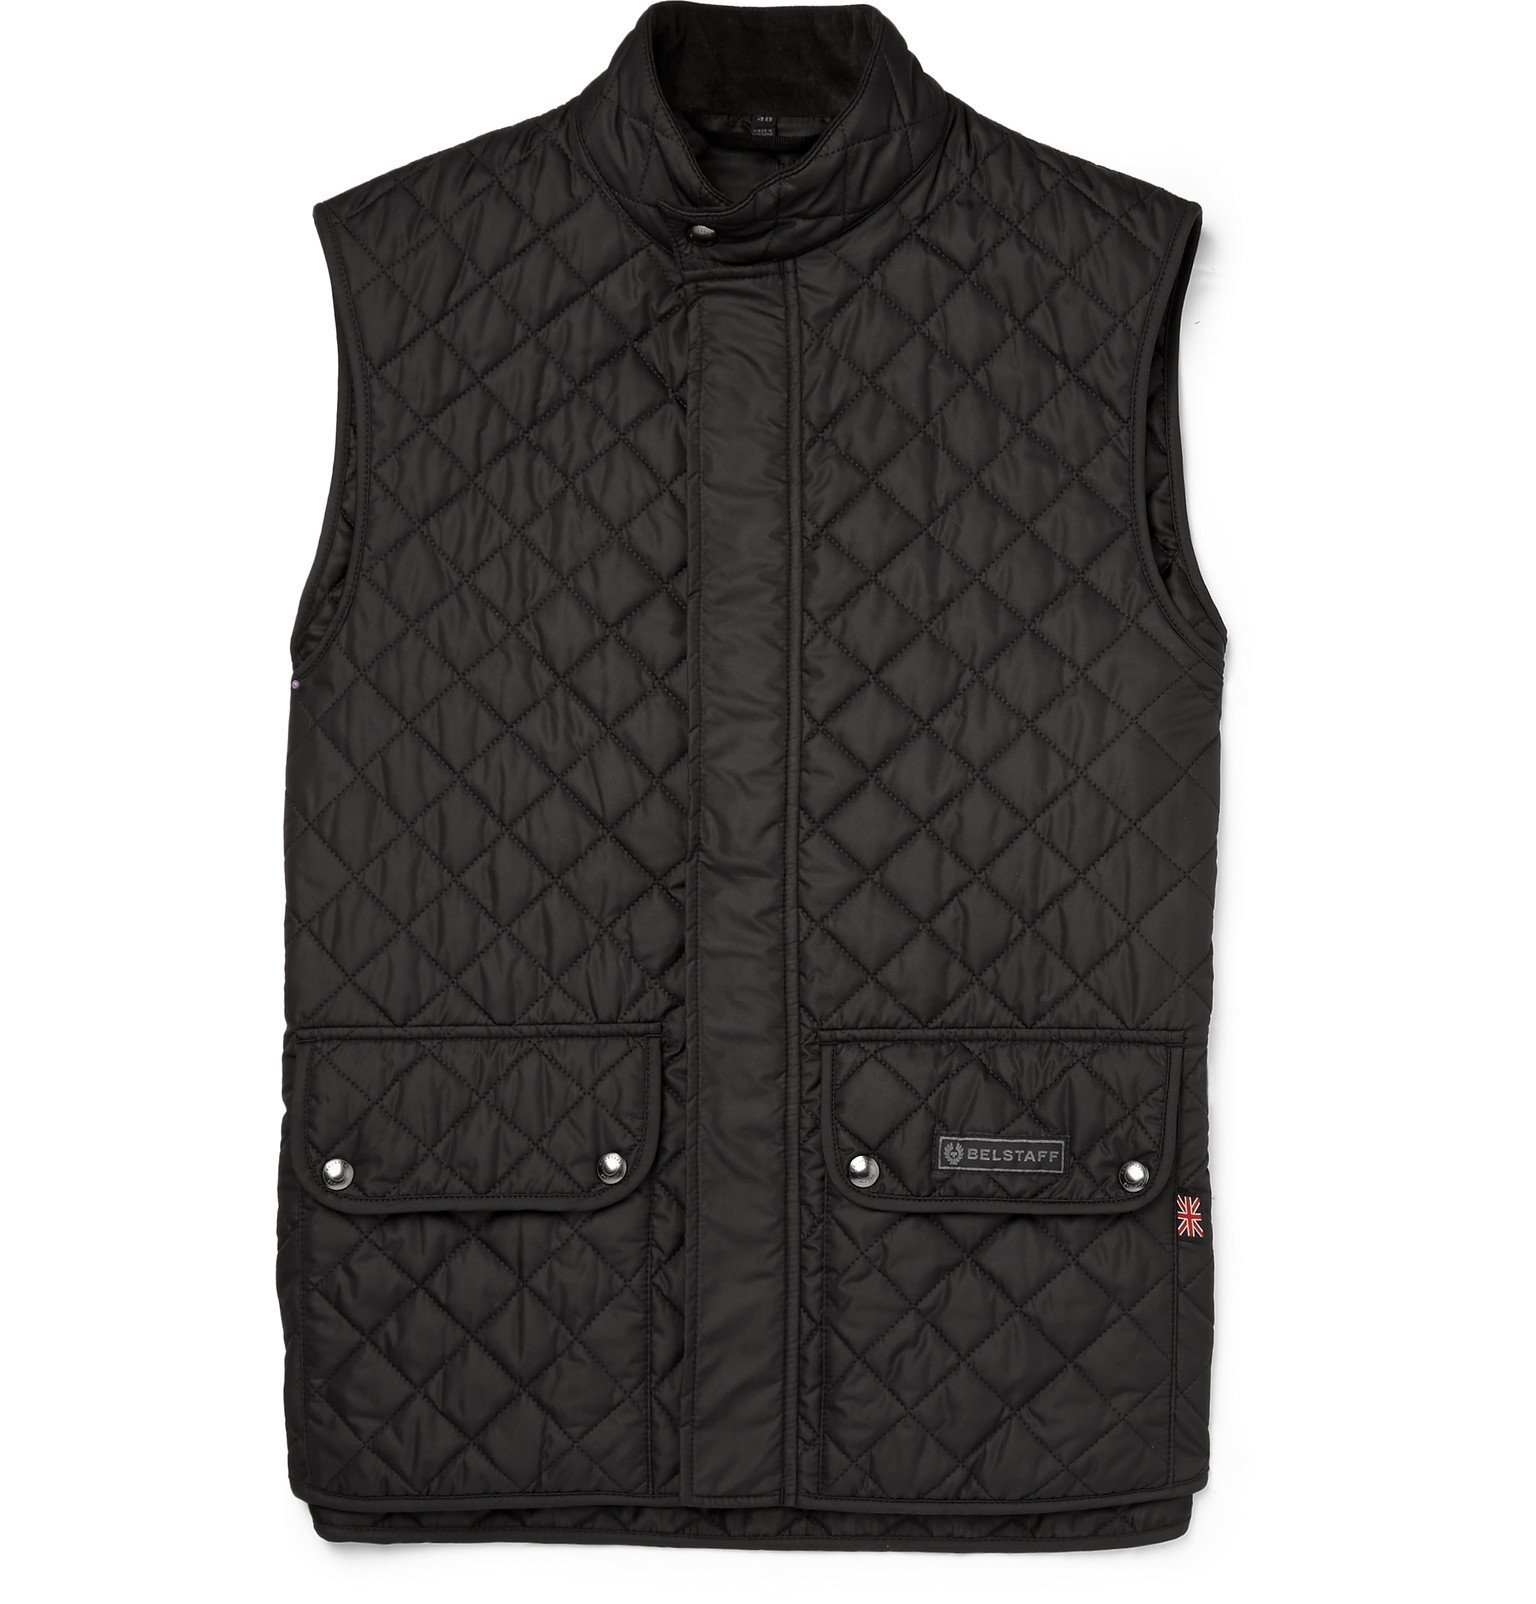 Belstaff - Slim-Fit Quilted Shell Gilet - Black